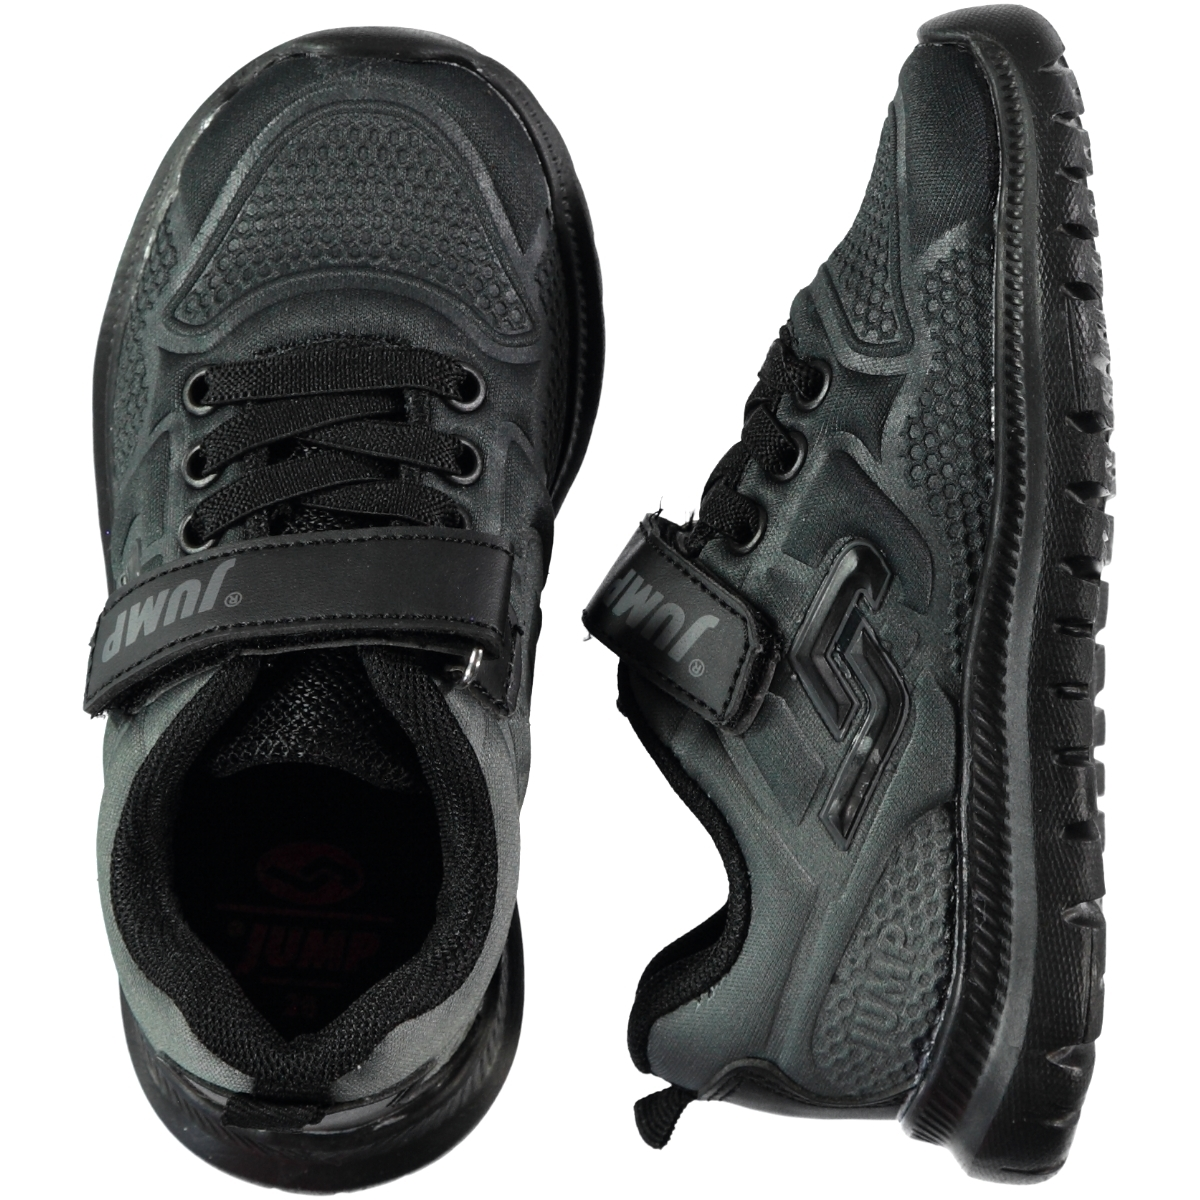 Jump 26 -30 Number Of Children's Sports Shoes Black